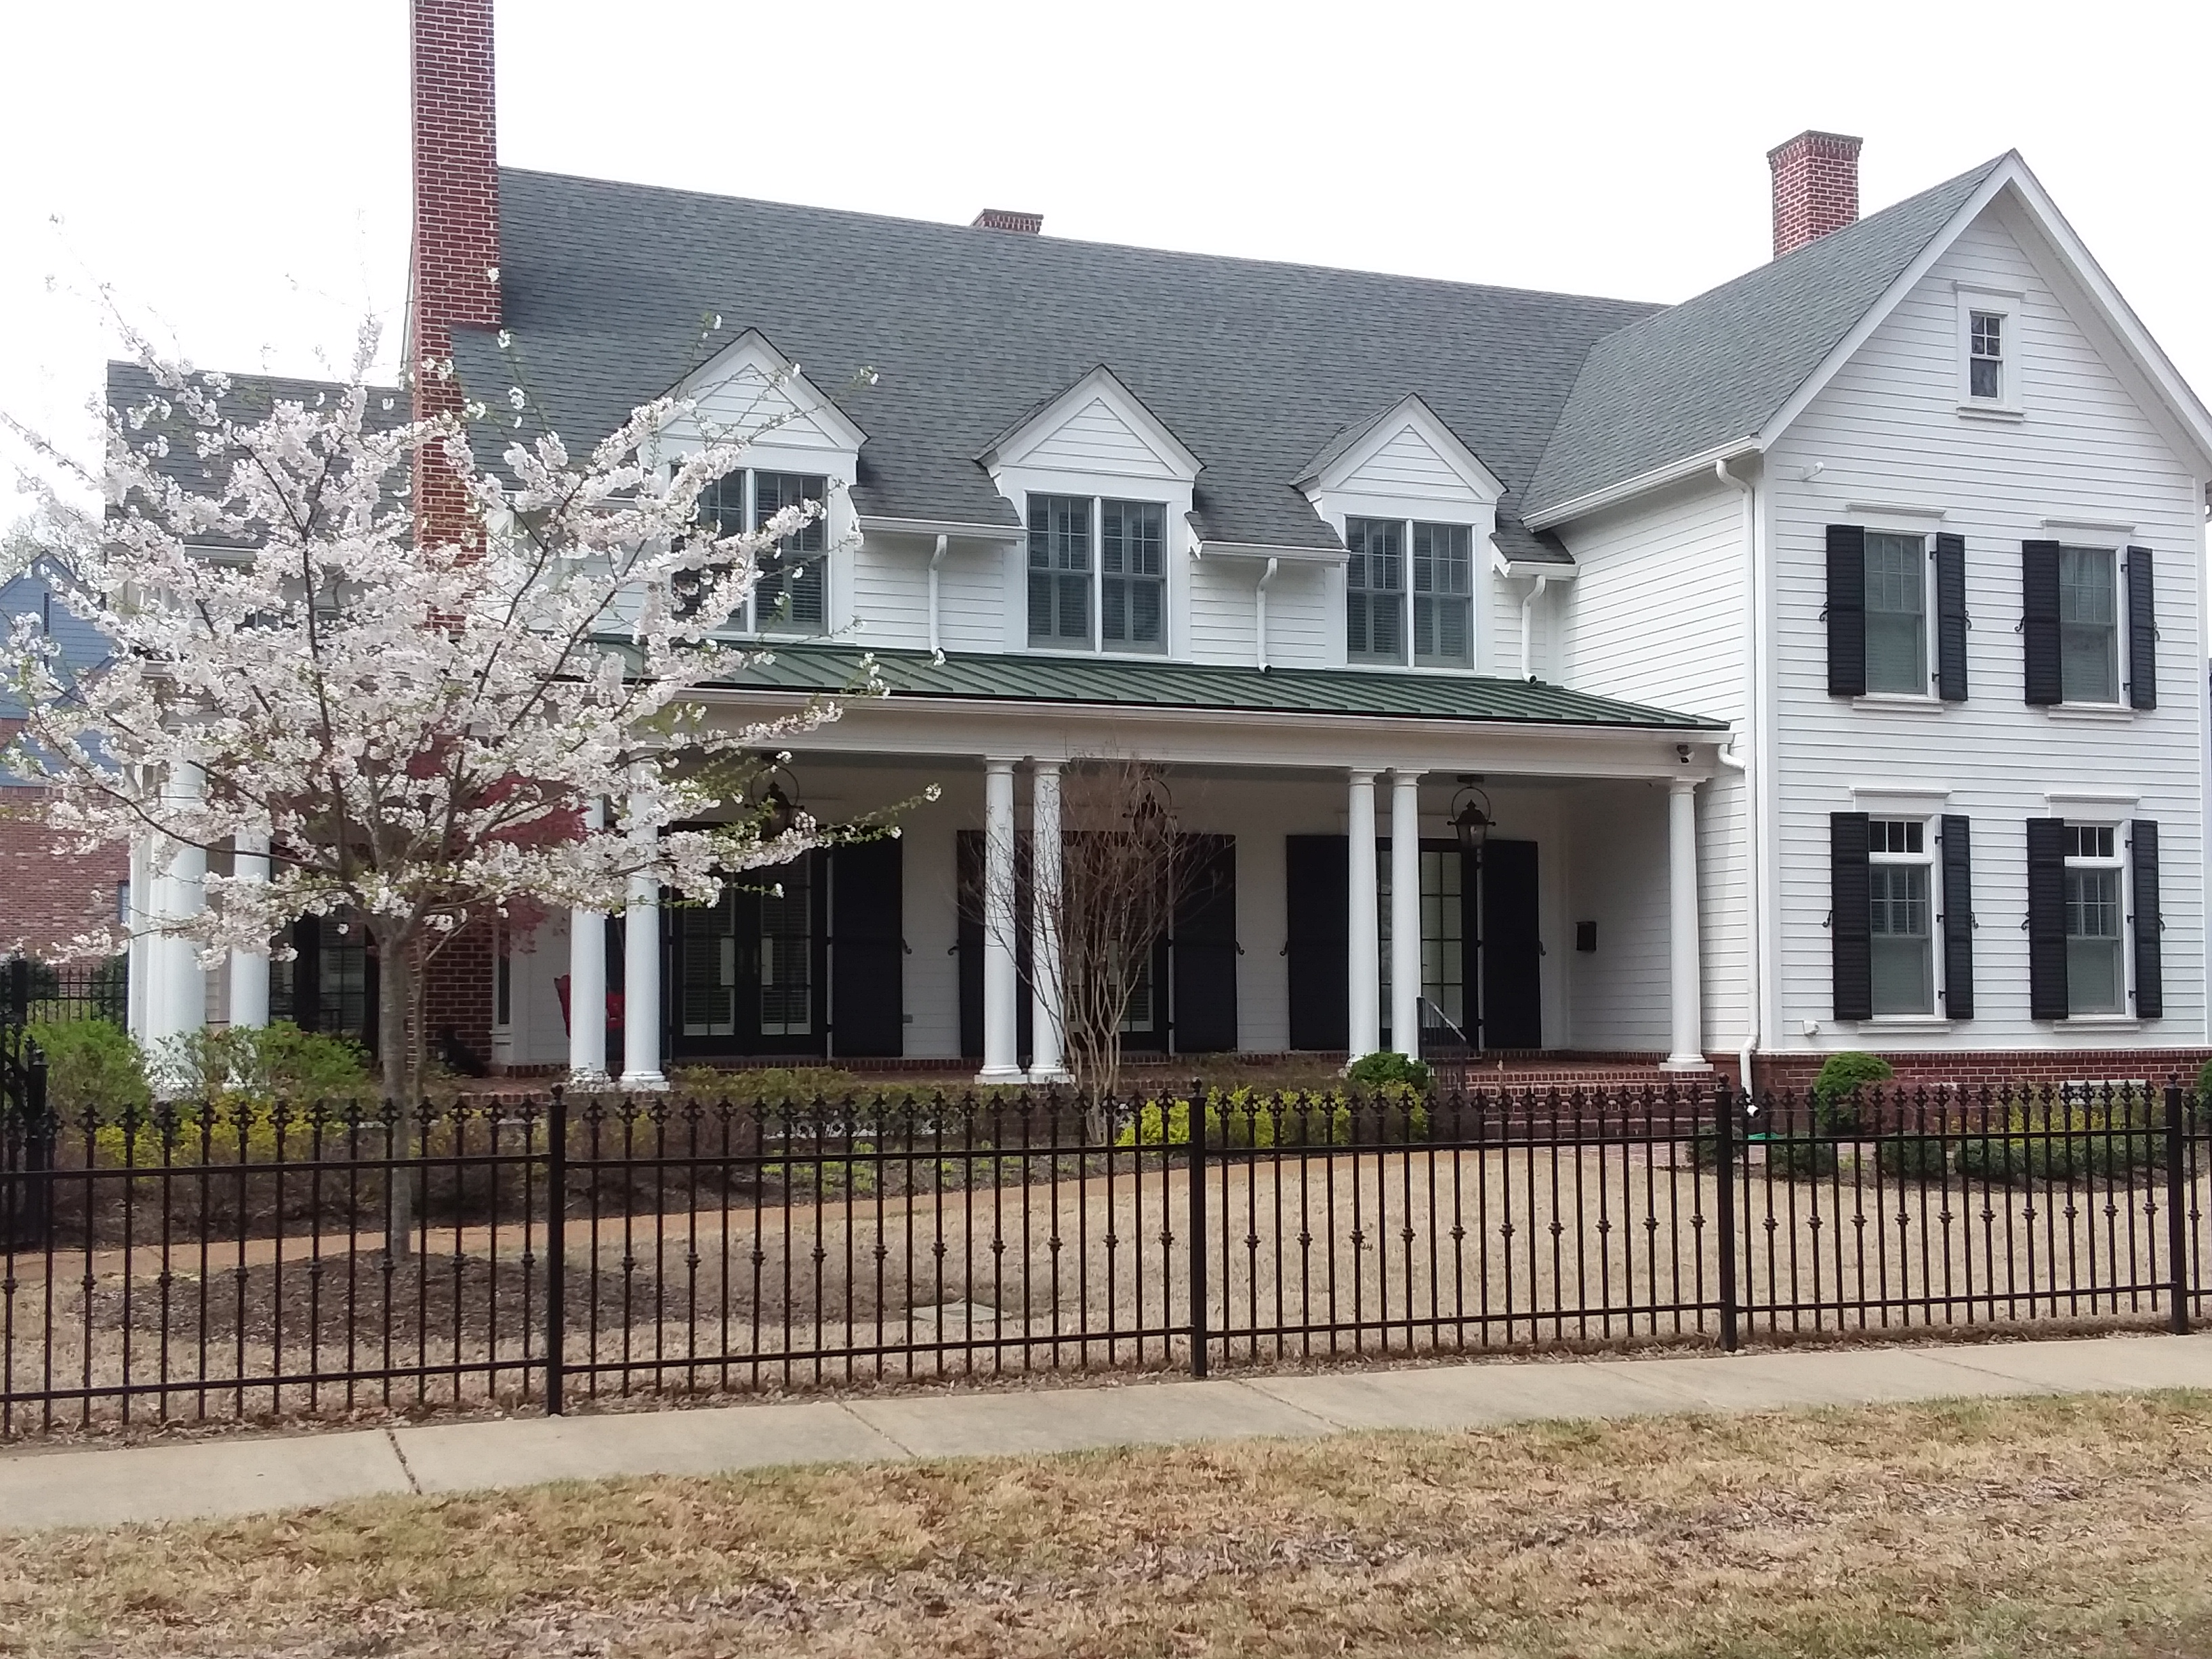 One of our single family houses for sale in Collierville, TN